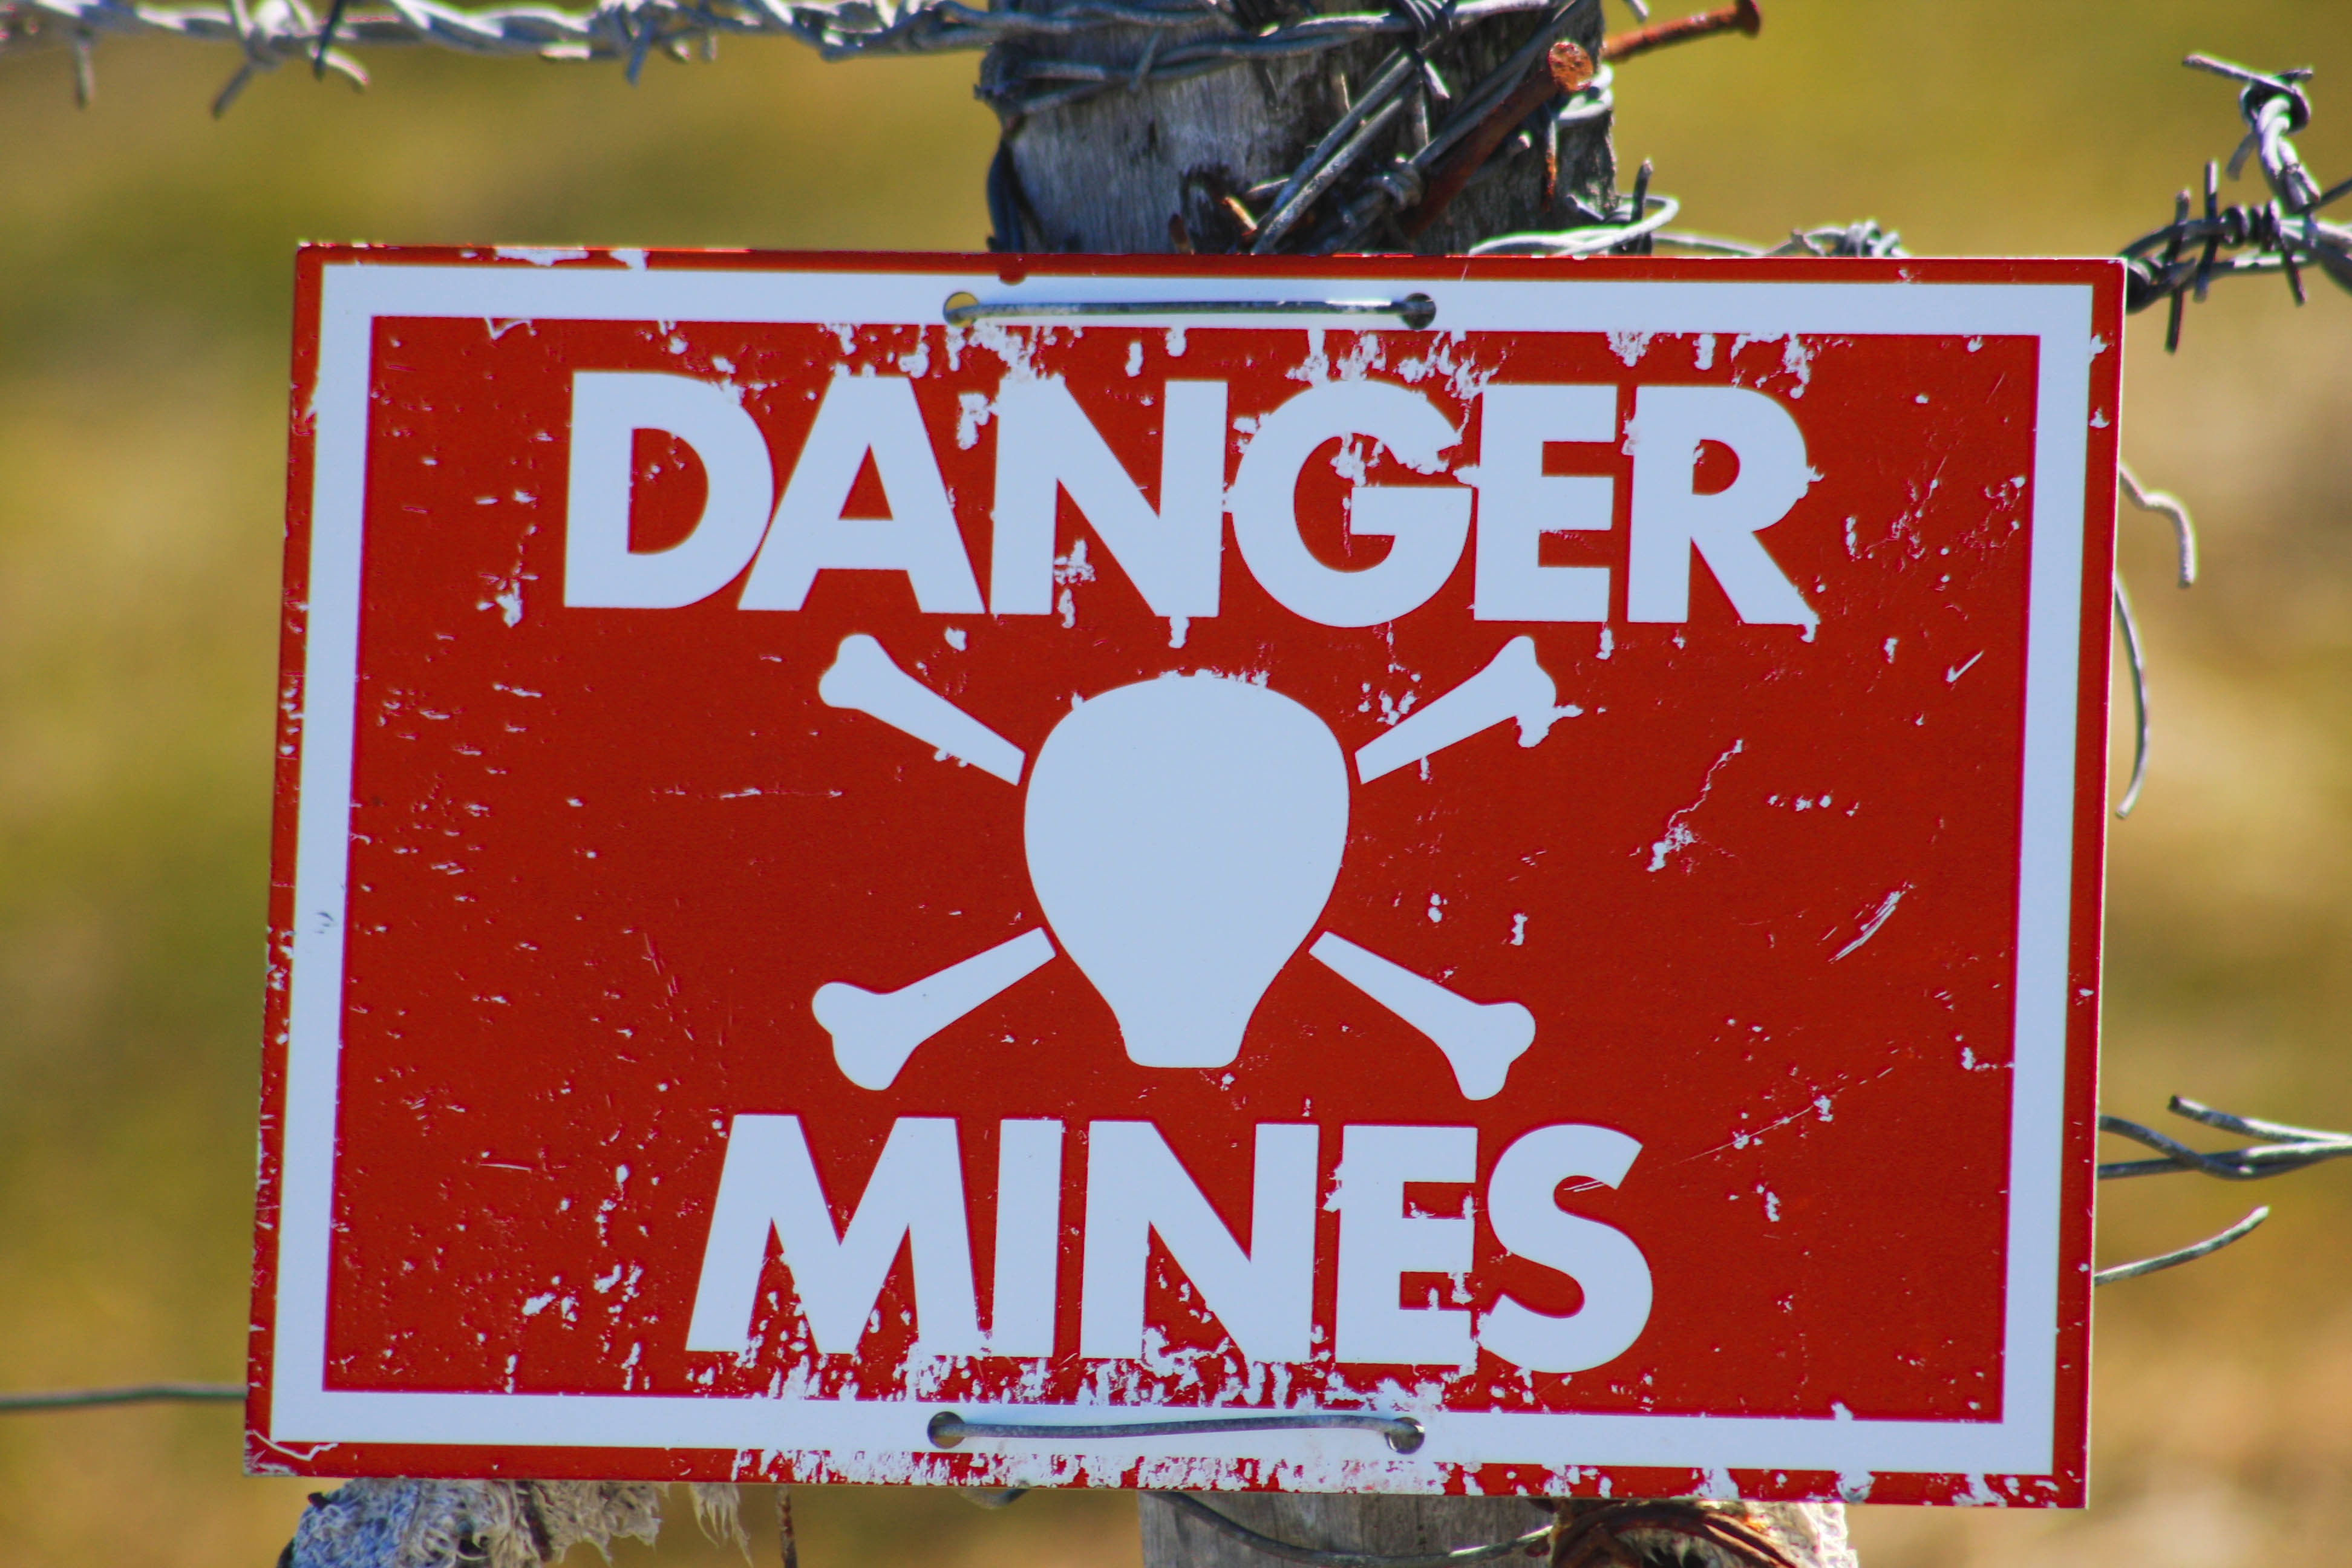 Minefield, Stanley, The Falklands